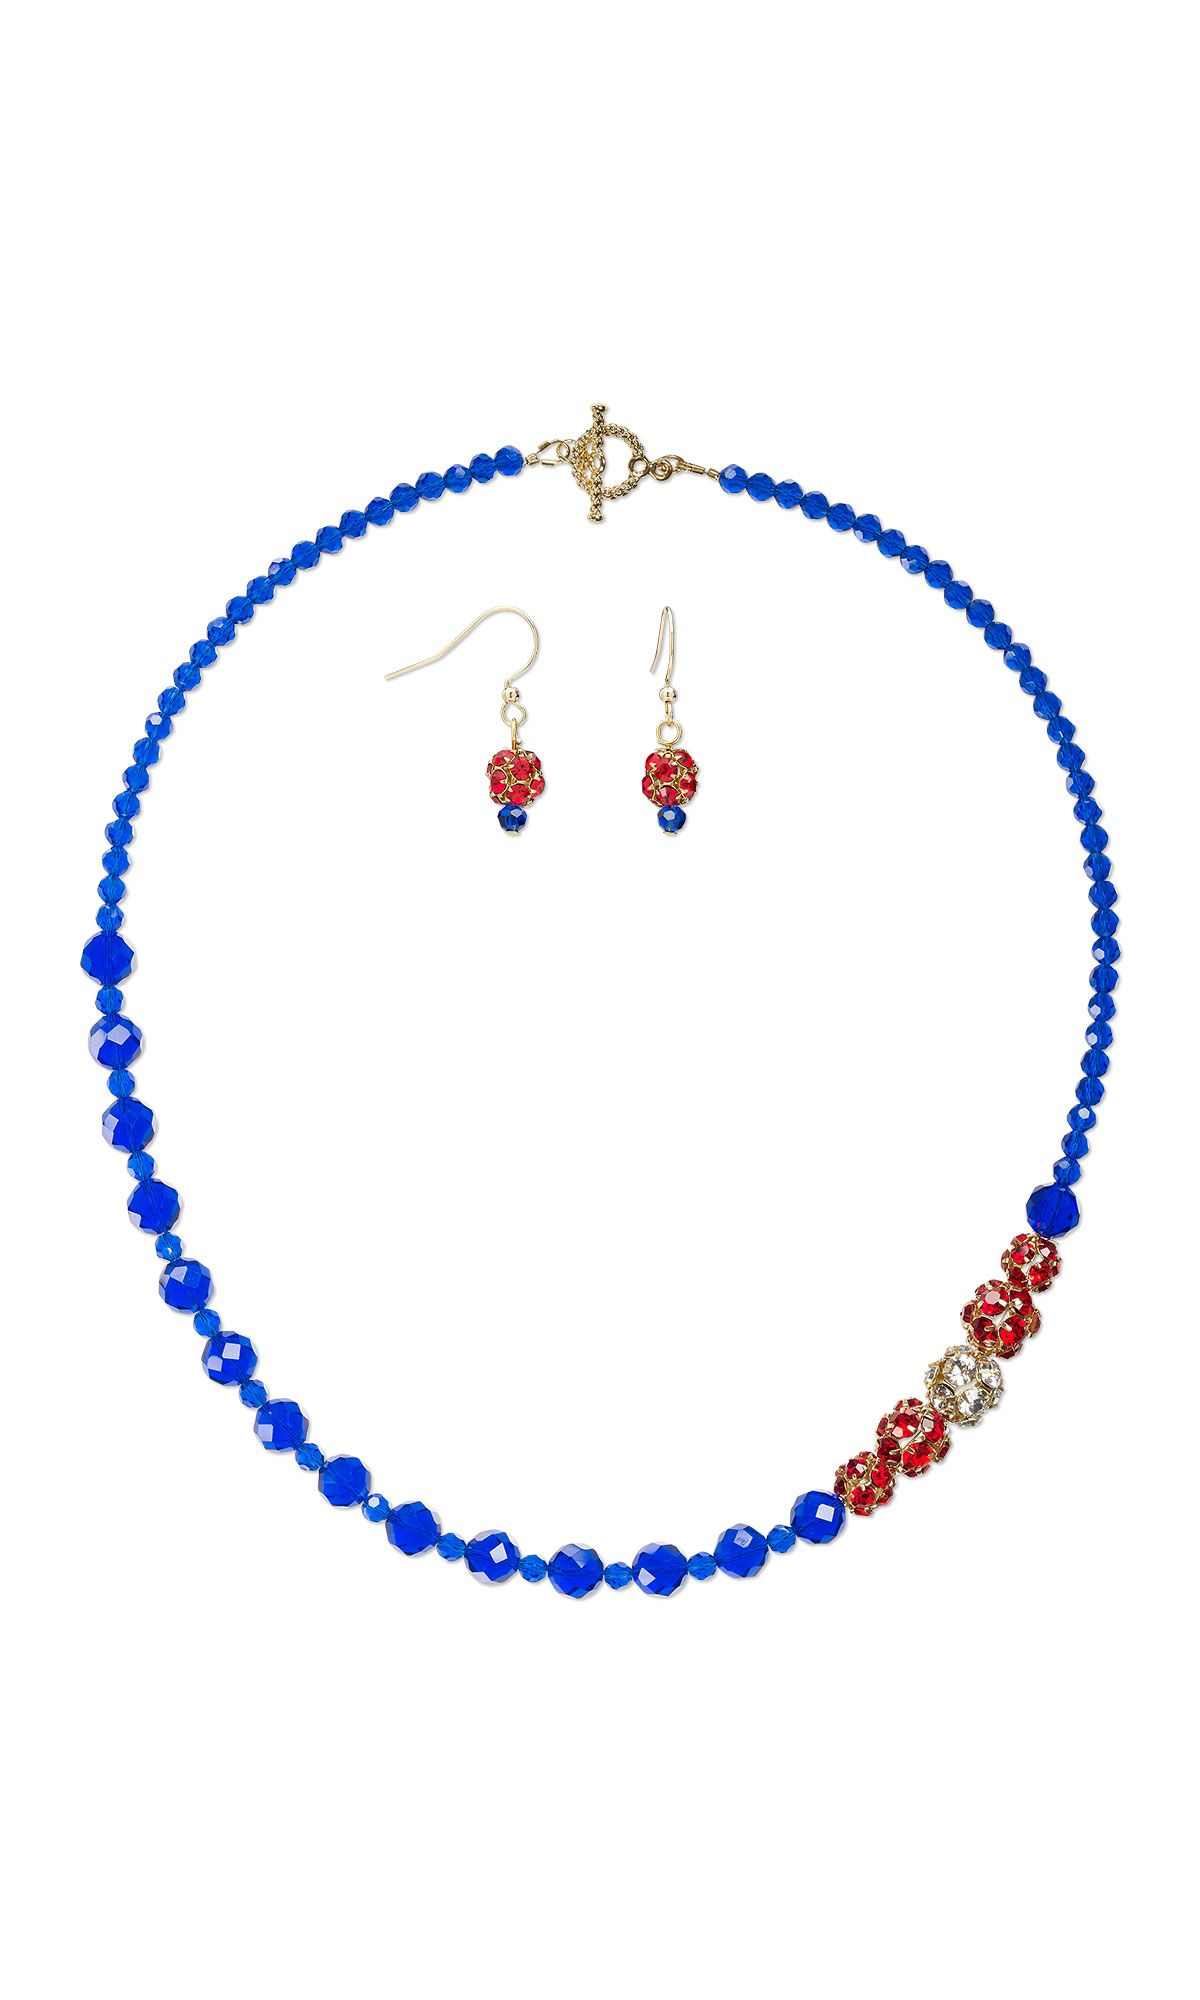 Jewelry Design - Single-Strand Necklace and Earring Set with Celestial Crystal® Beads and Silver- and Gold-Finished Brass with Glass Rhinestone Beads - Fire Mountain Gems and Beads